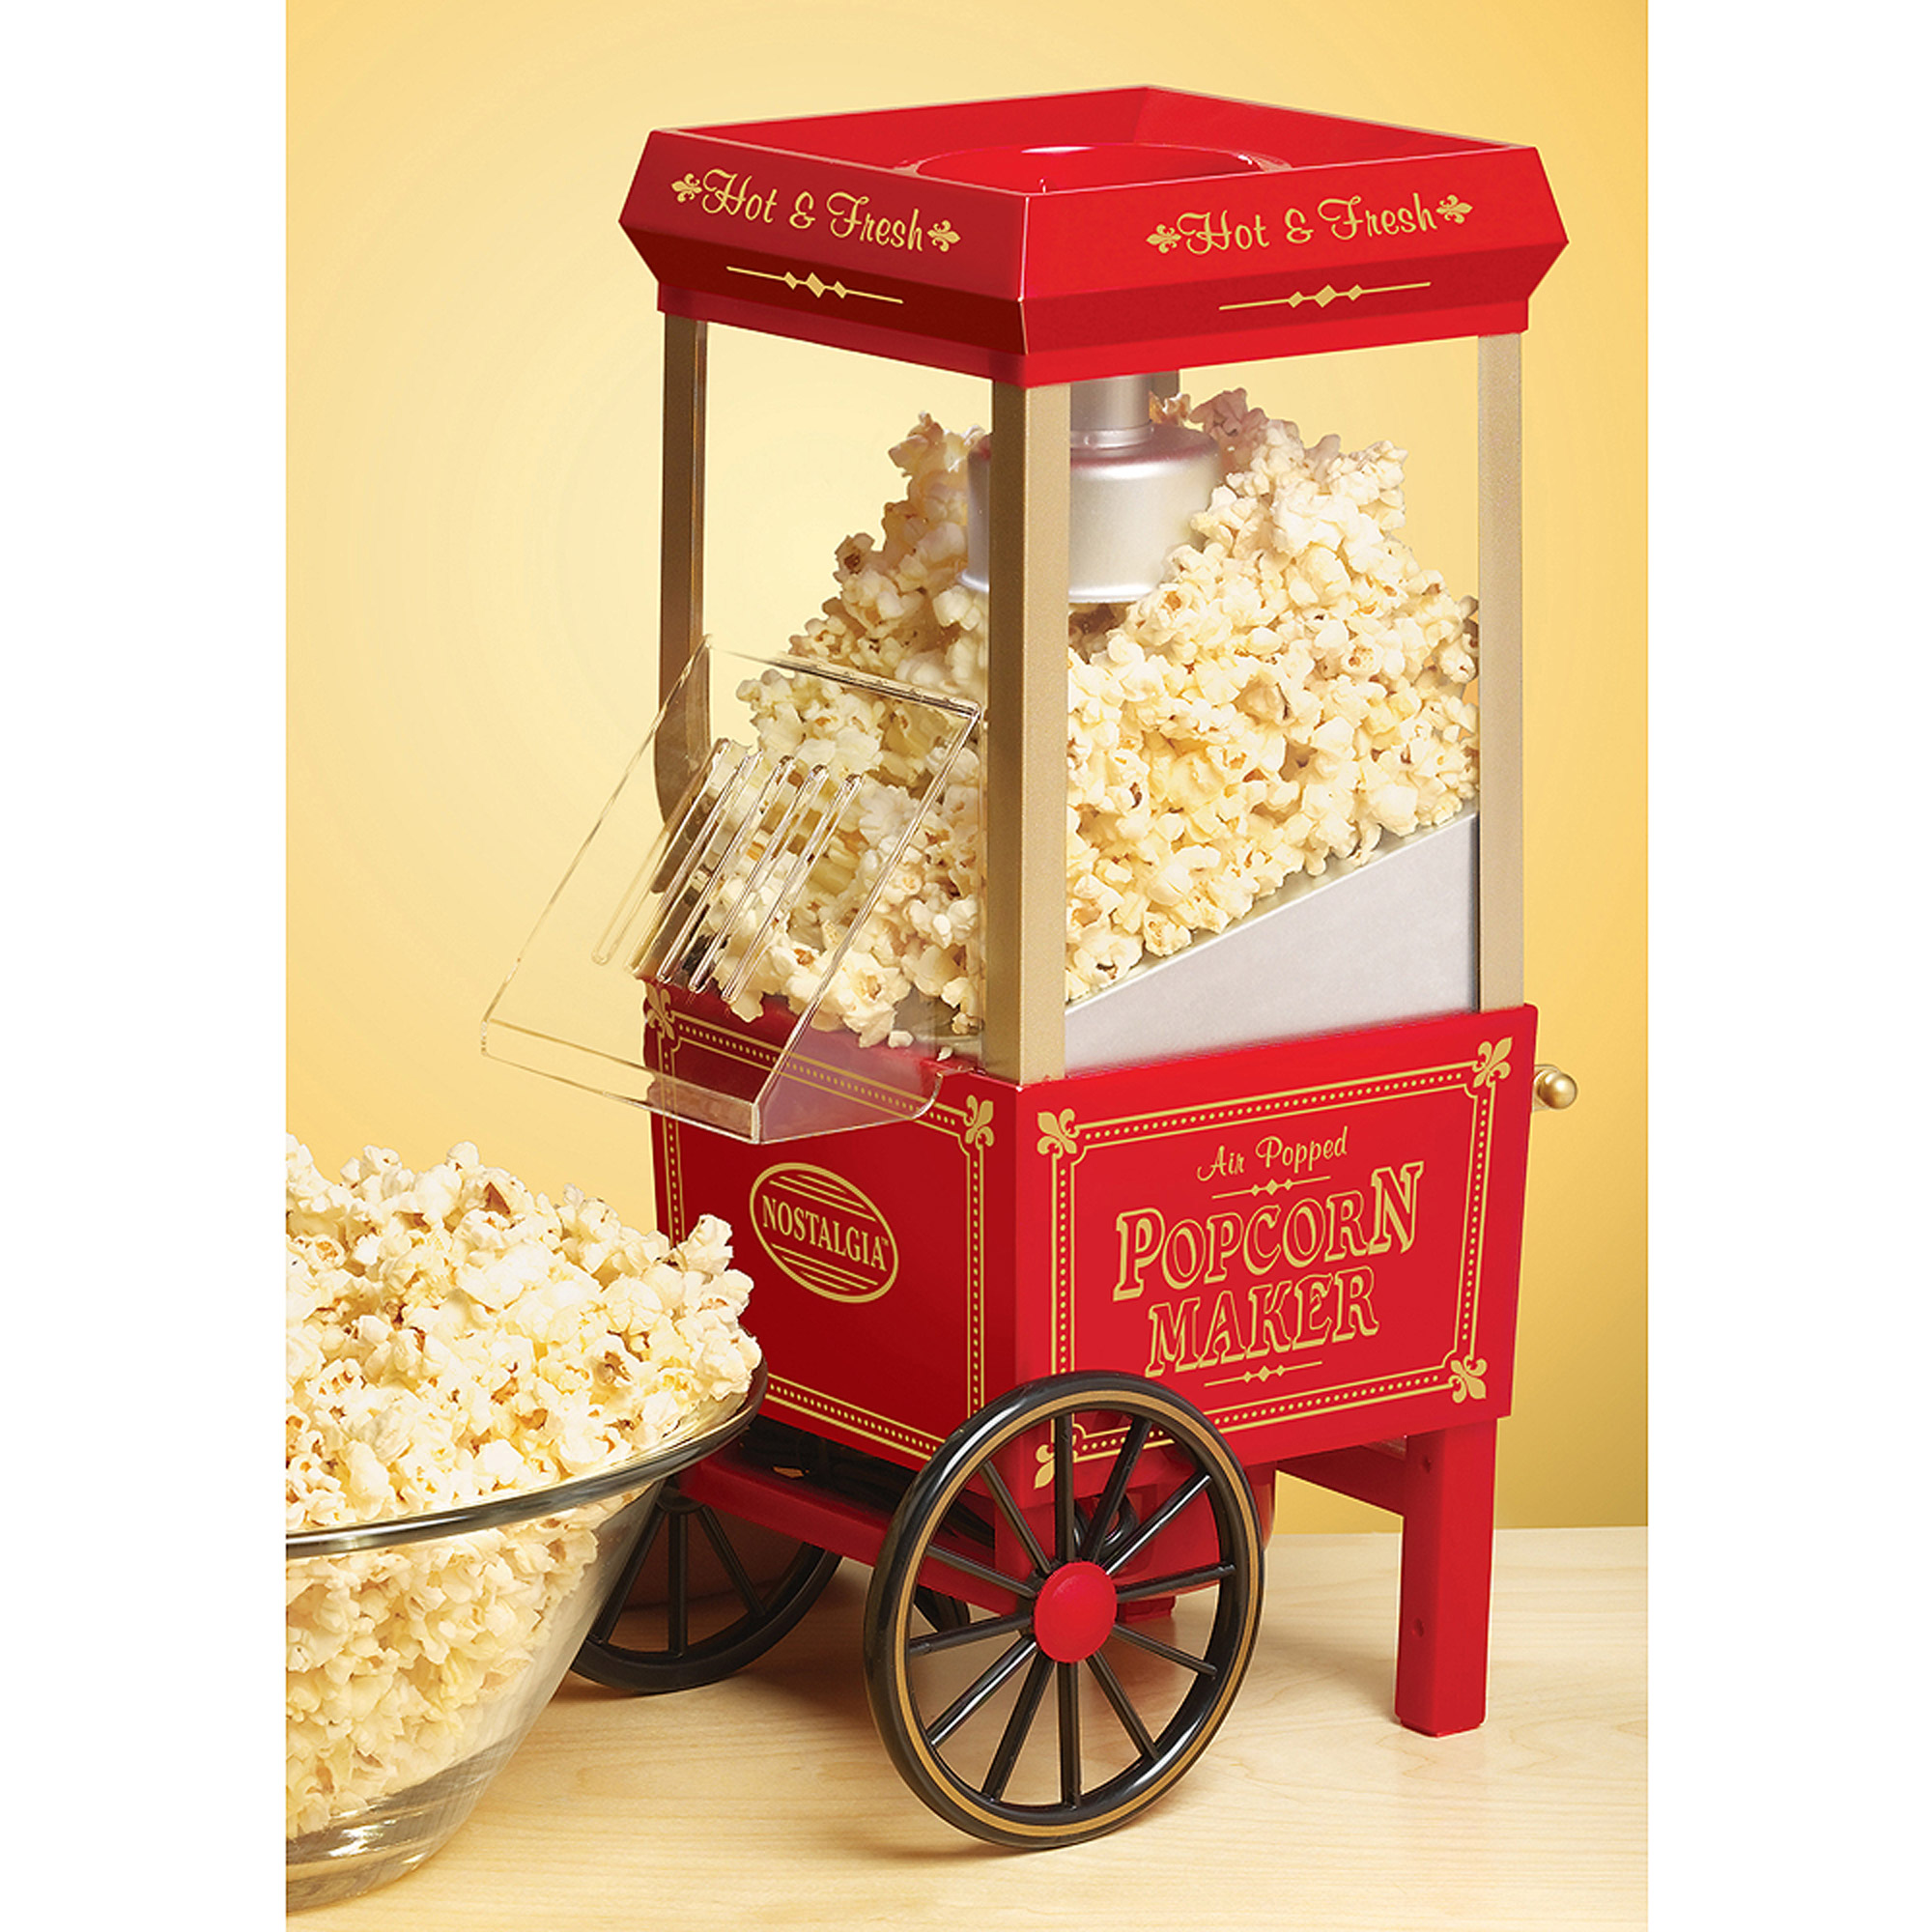 Nostalgia Hot Air Popcorn Maker, Red